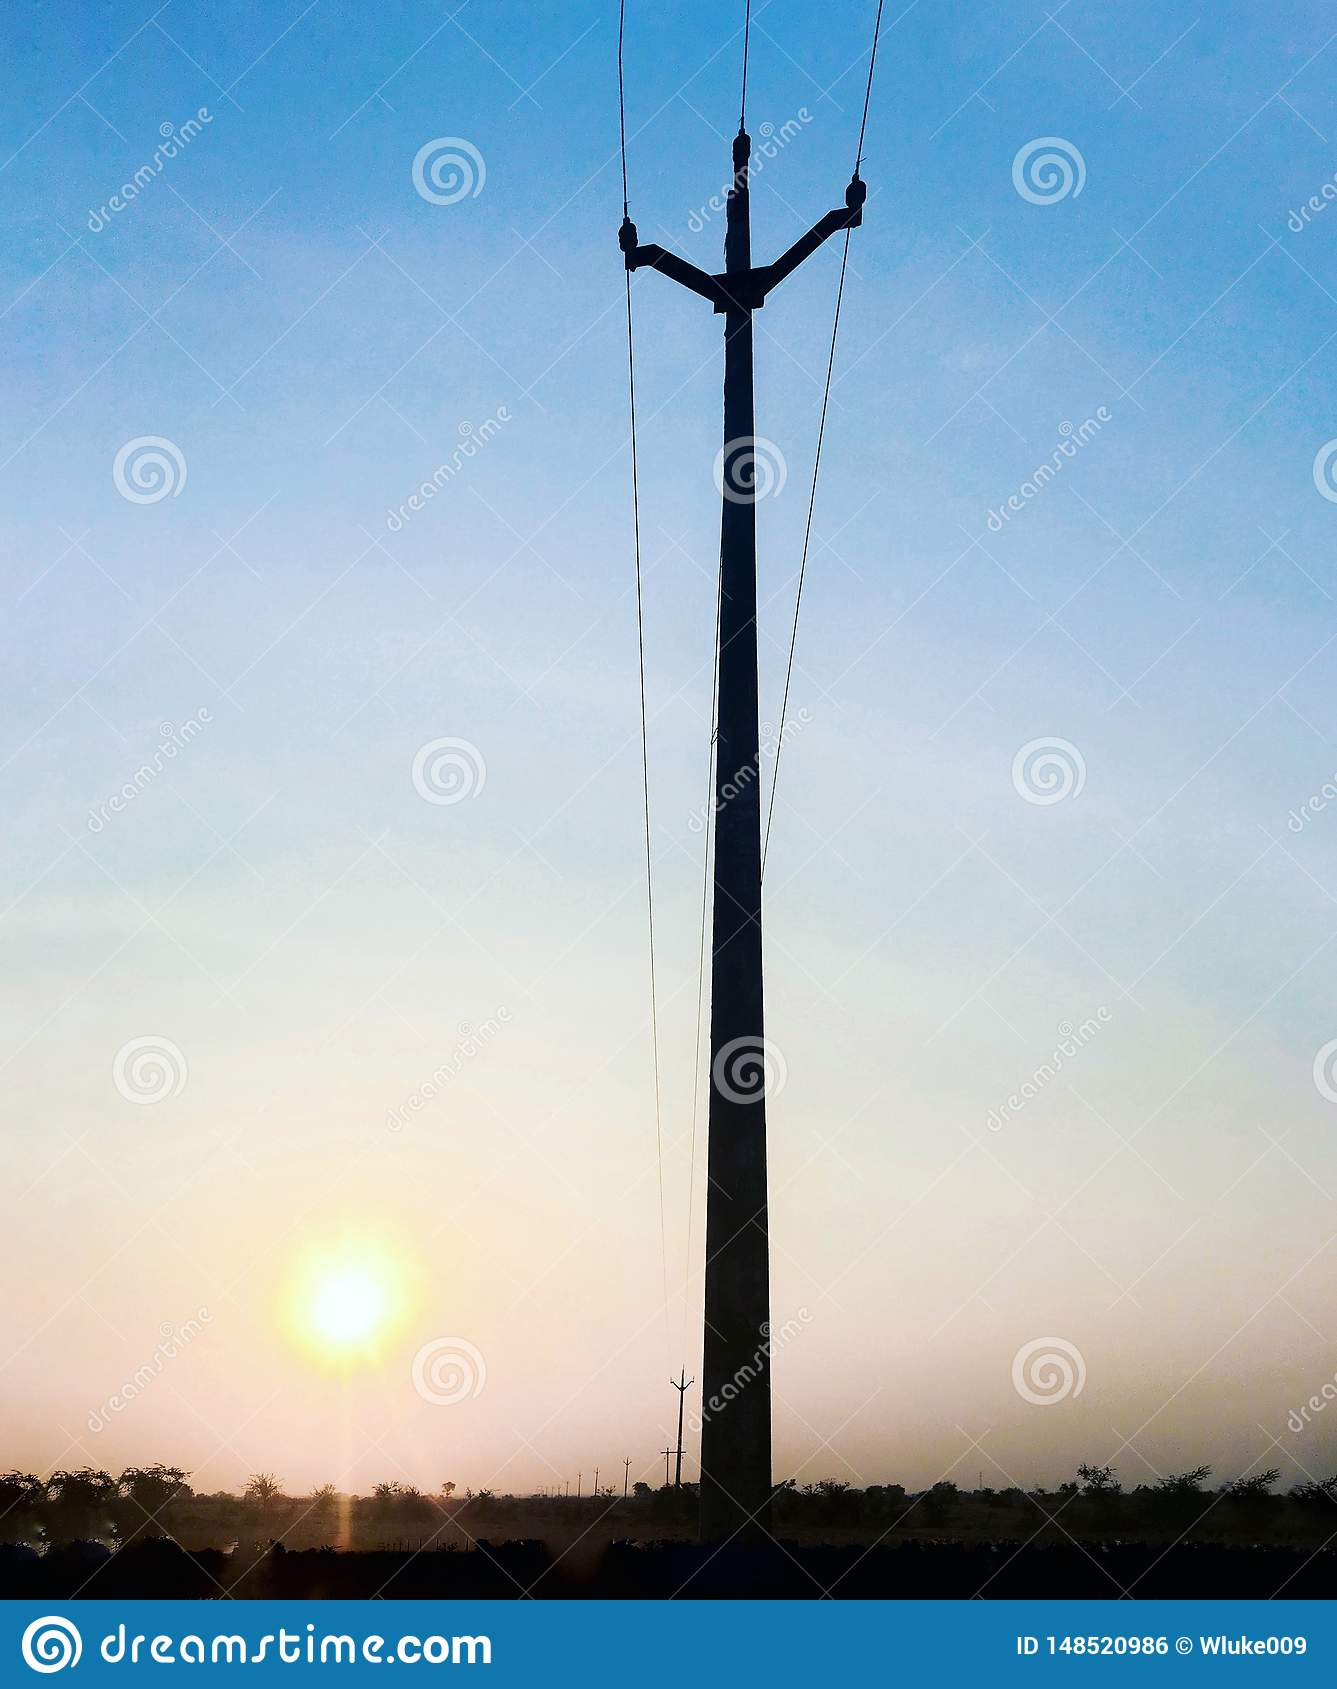 Blue sky with yellow sun and pole